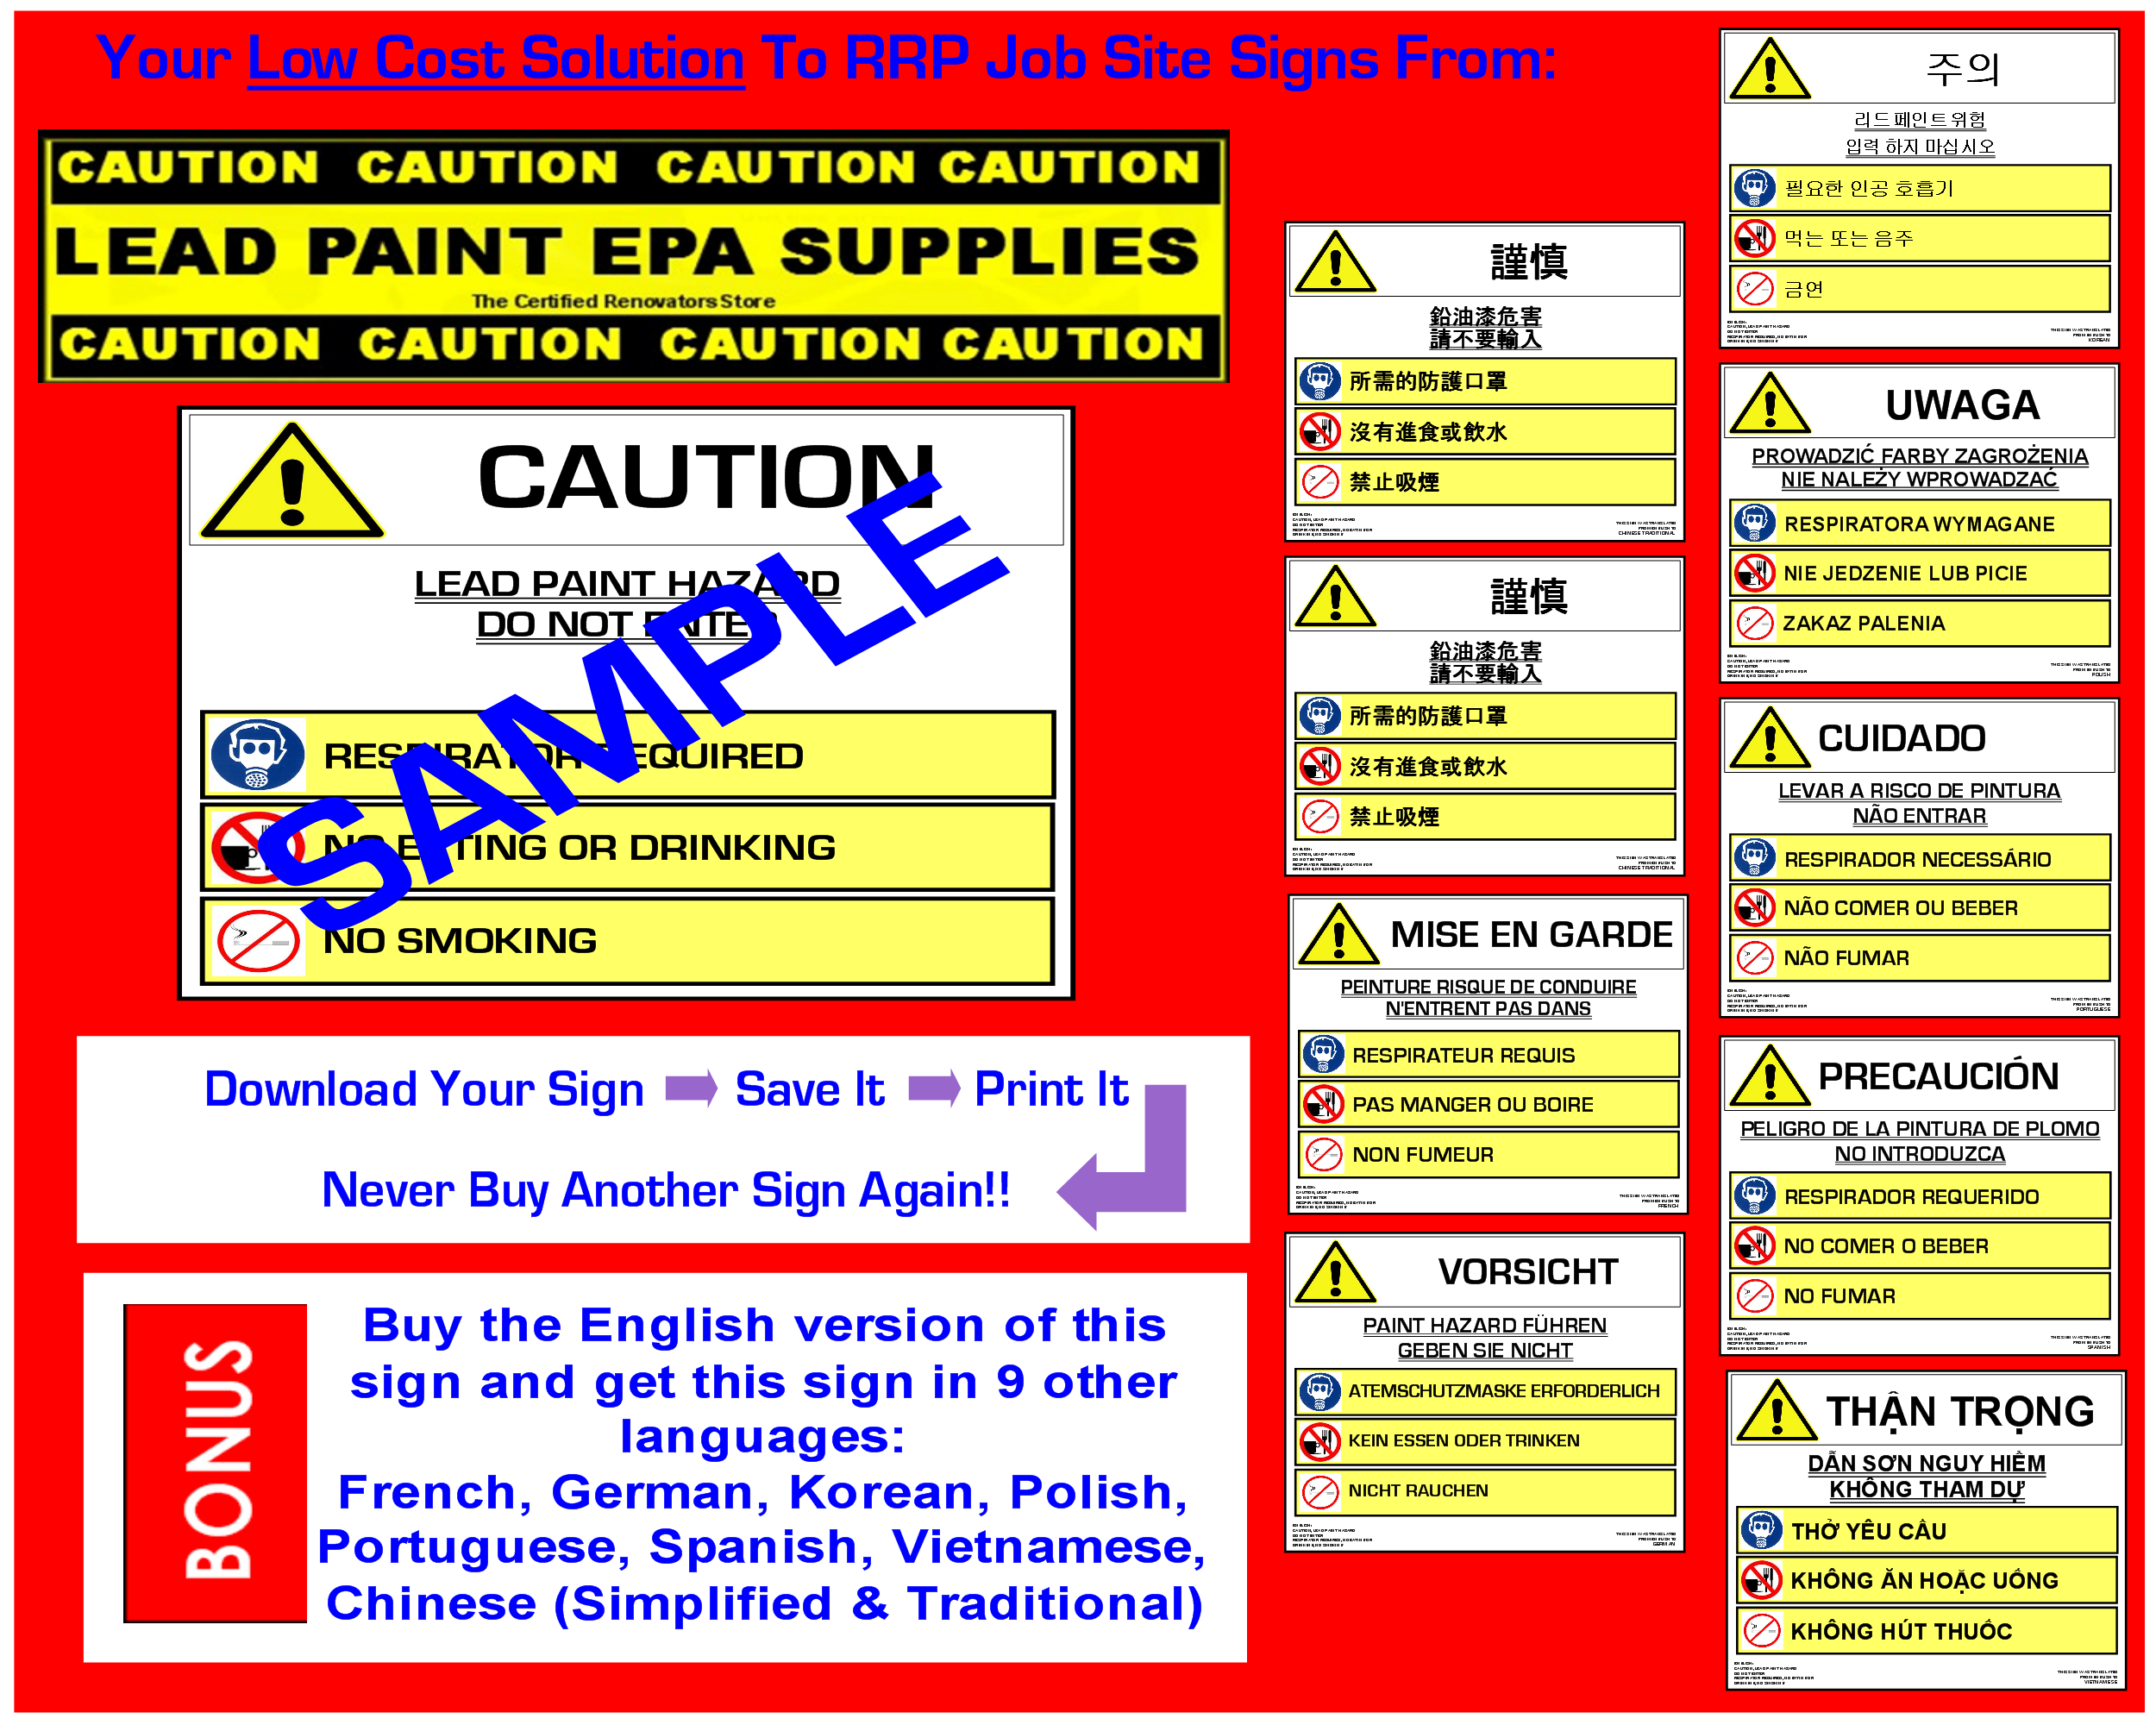 Rrp job site sign lead paint hazard symbols 10 languages caution lead paint hazard symbols bannerg biocorpaavc Image collections